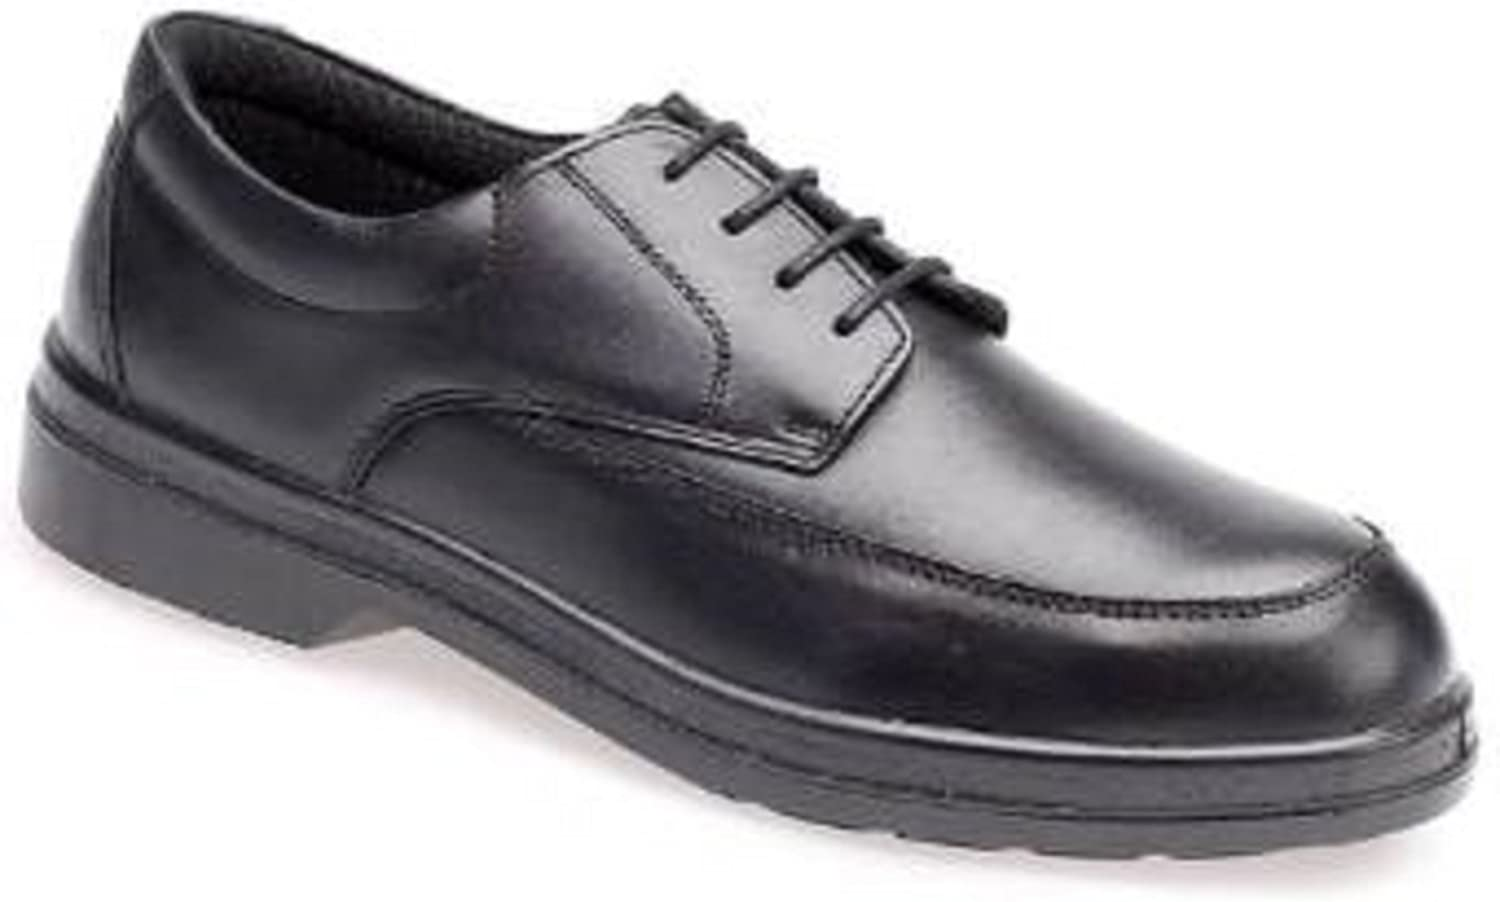 Capps LH700 High Quality Black Leather Mudguard Safety shoes With Comfort Lining (UK 11 EURO 46)